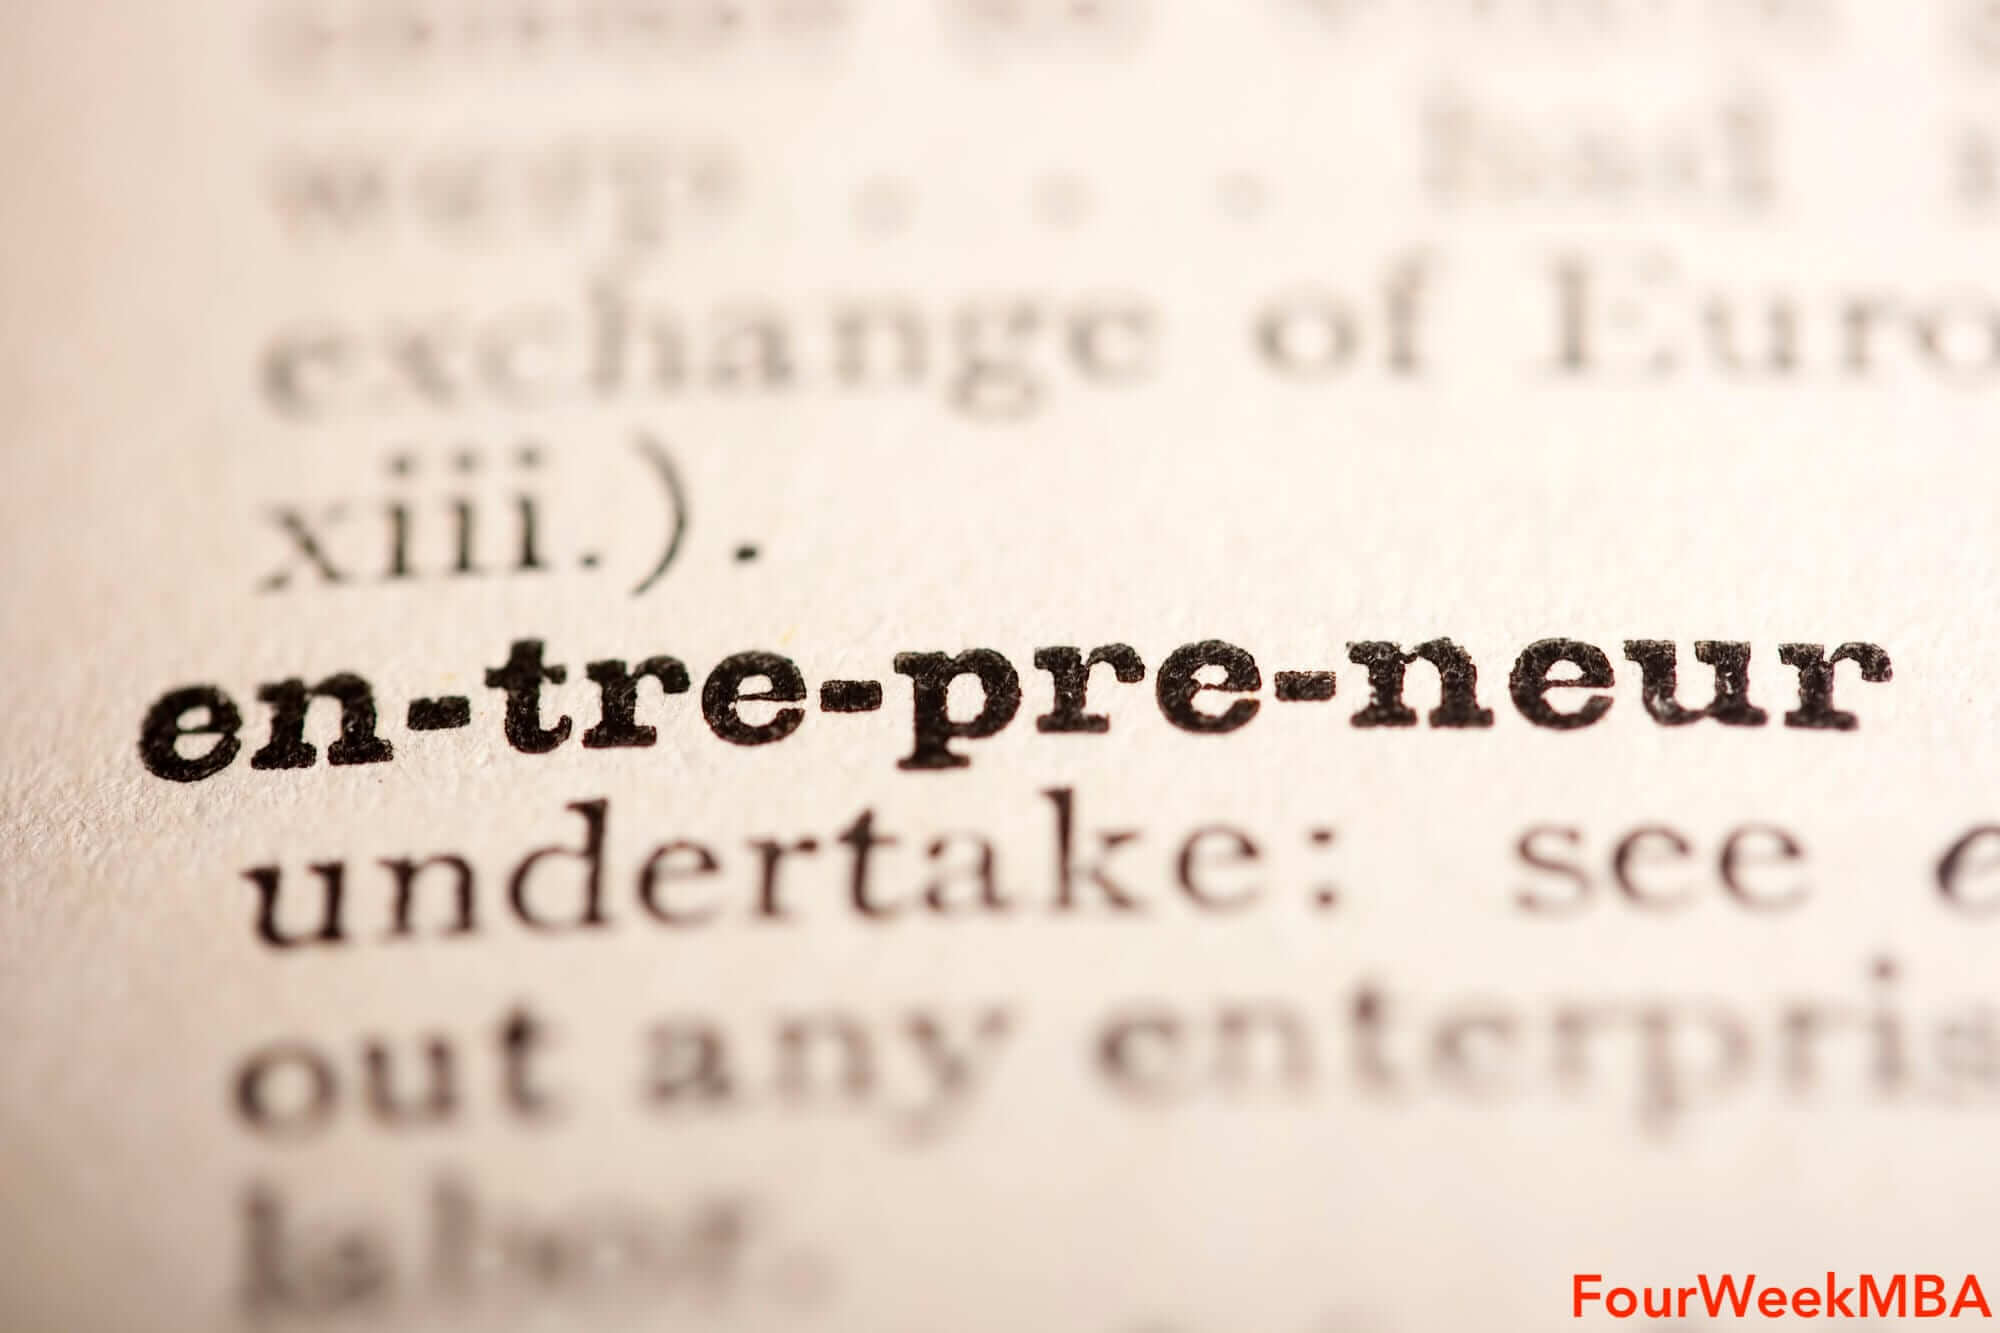 FourWeekMBA - The Leading Source Of Insights On Digital Entrepreneurship And Business Model Strategy